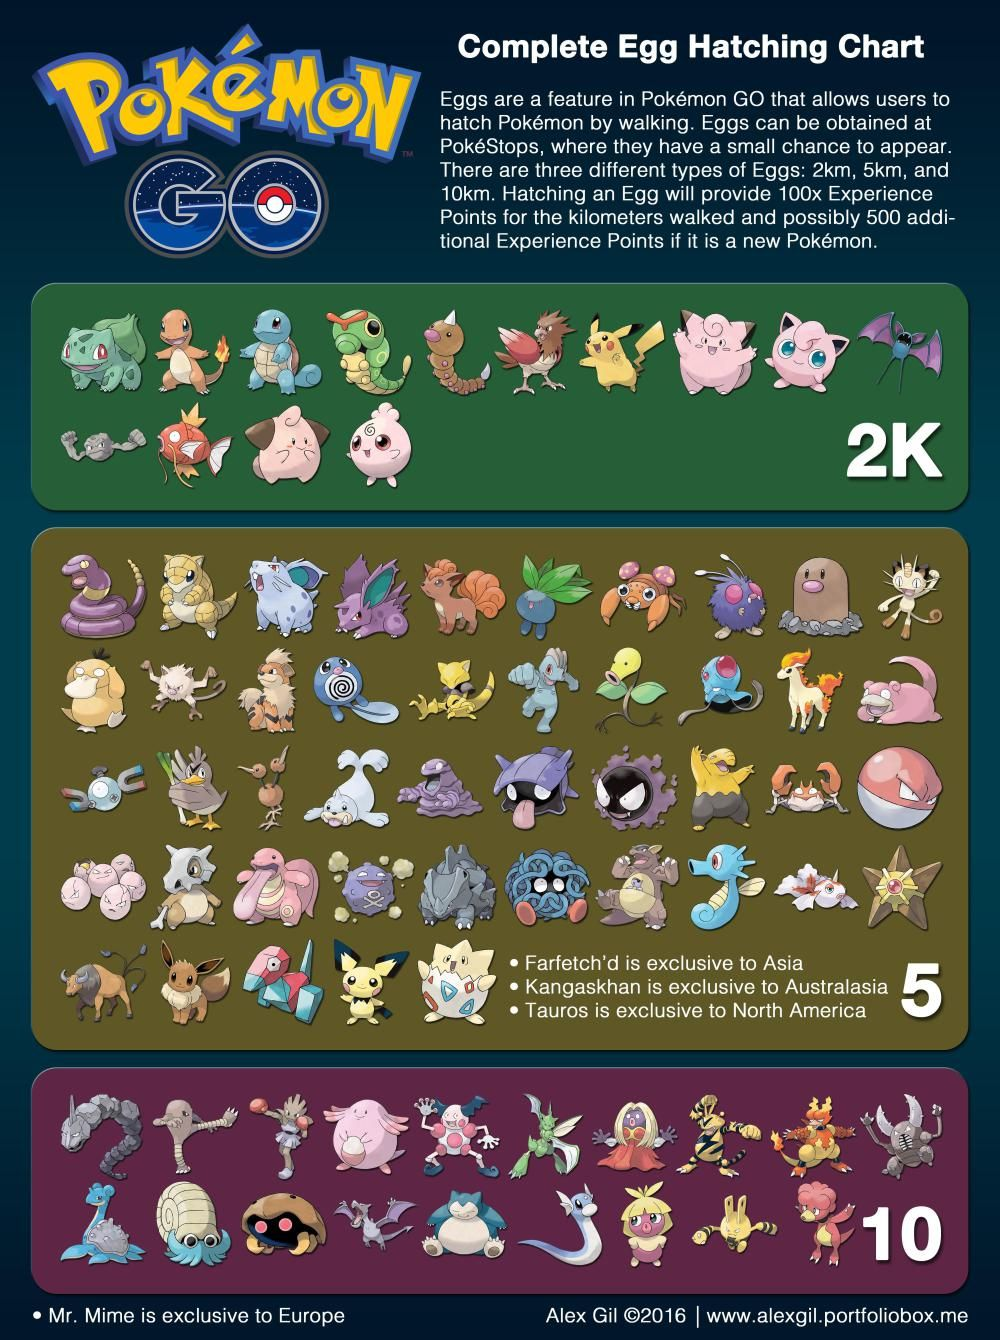 Niantic Pokemon Go Gen 2 Updated Egg Hatching Chart With New Baby Pokemon For 2km 5km And 10km Pokemon Go Egg Chart Pokemon Go Pokemon Eggs